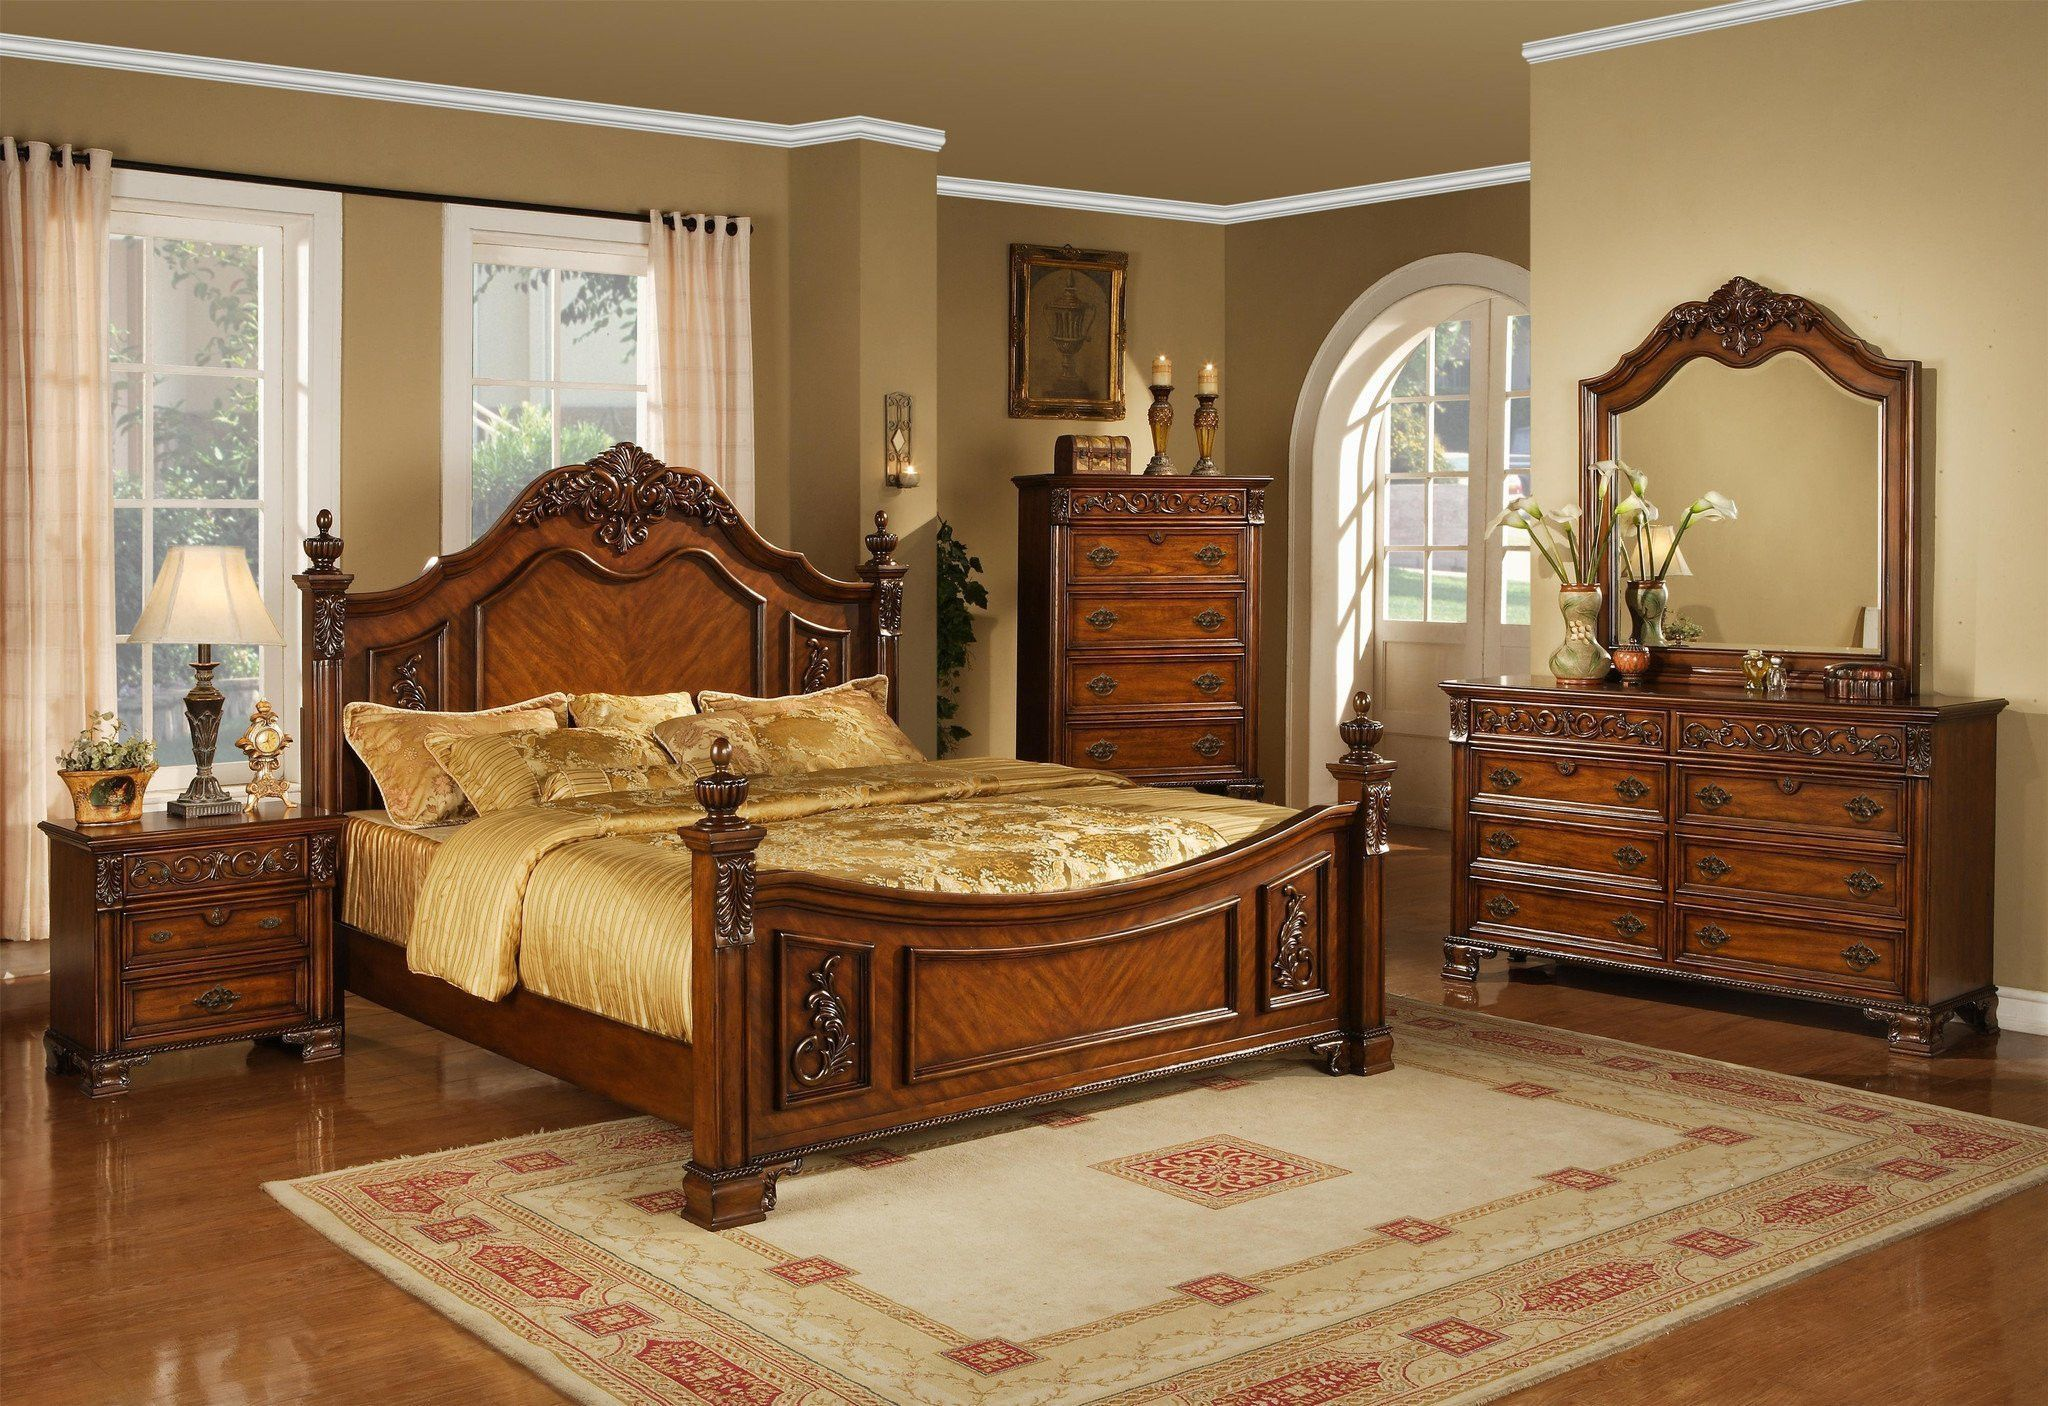 Mansion Cherry Queen Bedroom Set By Lifestyle Furniture